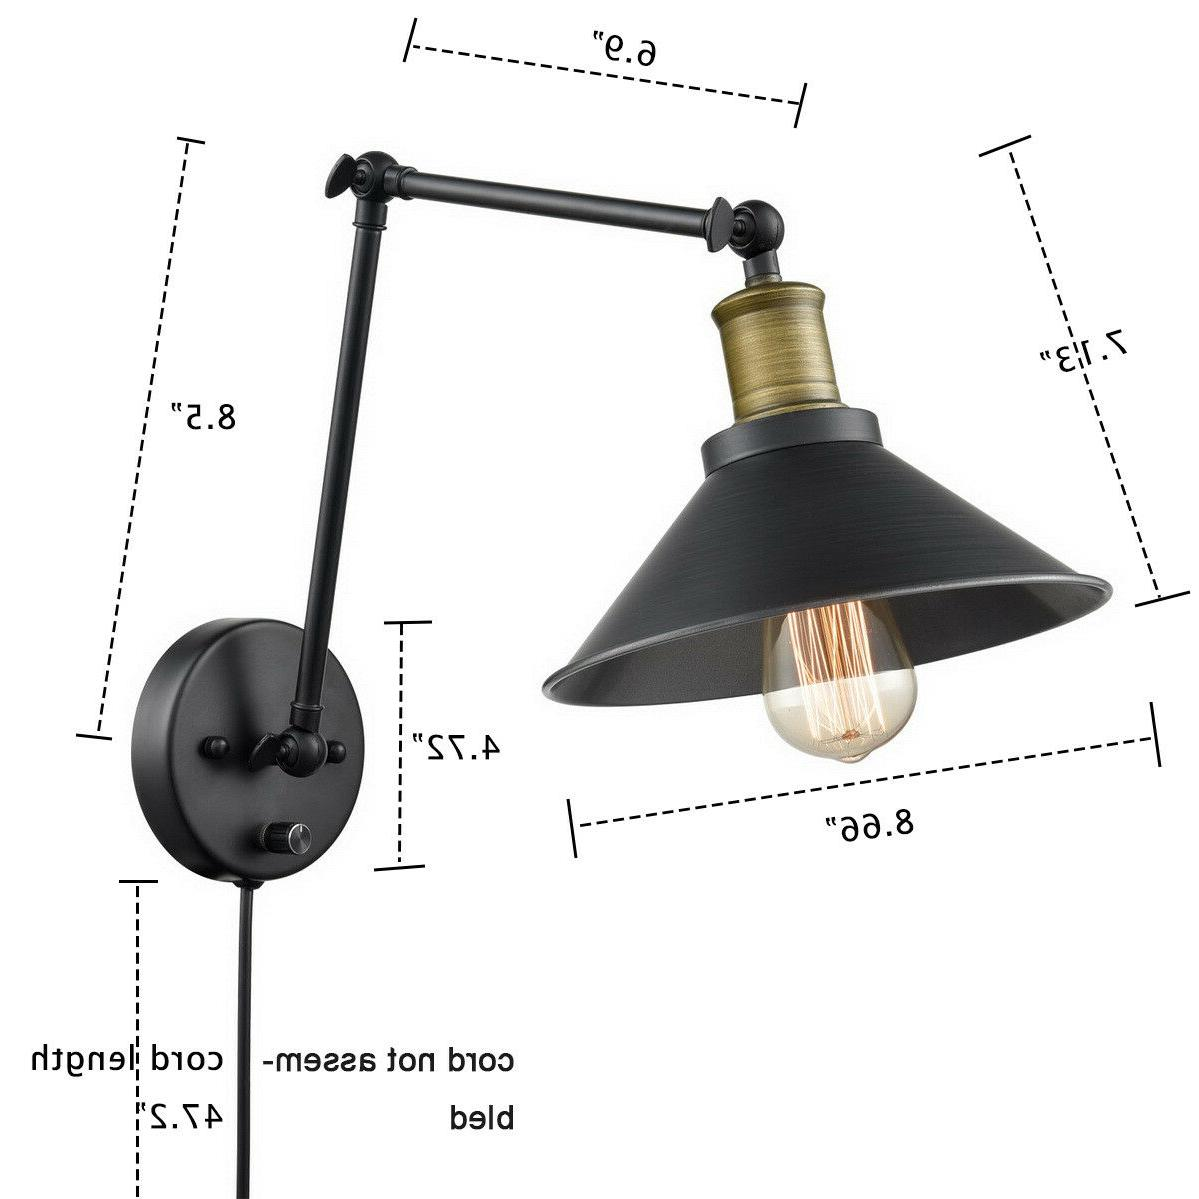 Double Arms Light with Switch Knob Sconce